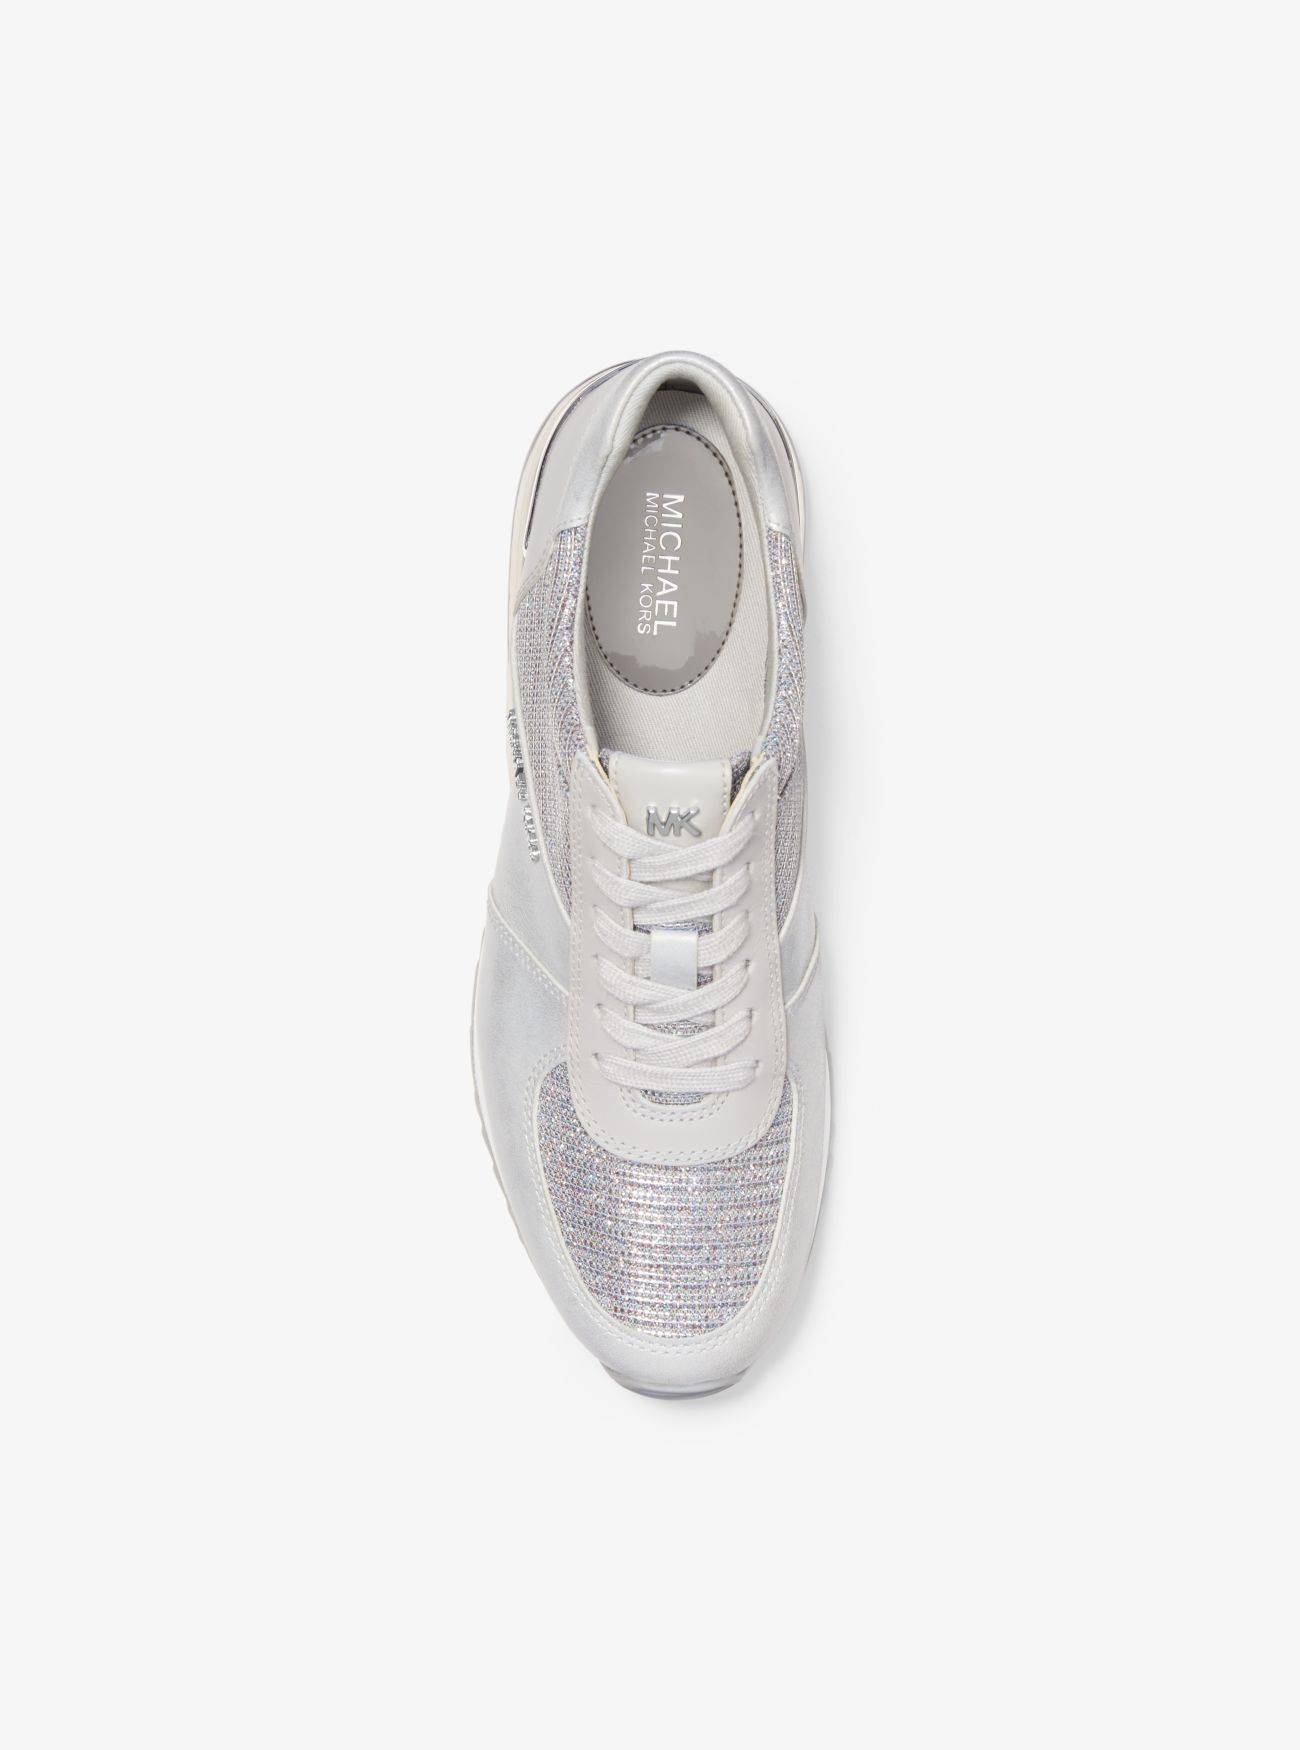 Allie Extreme Leather and Glitter Chain-Mesh Trainer